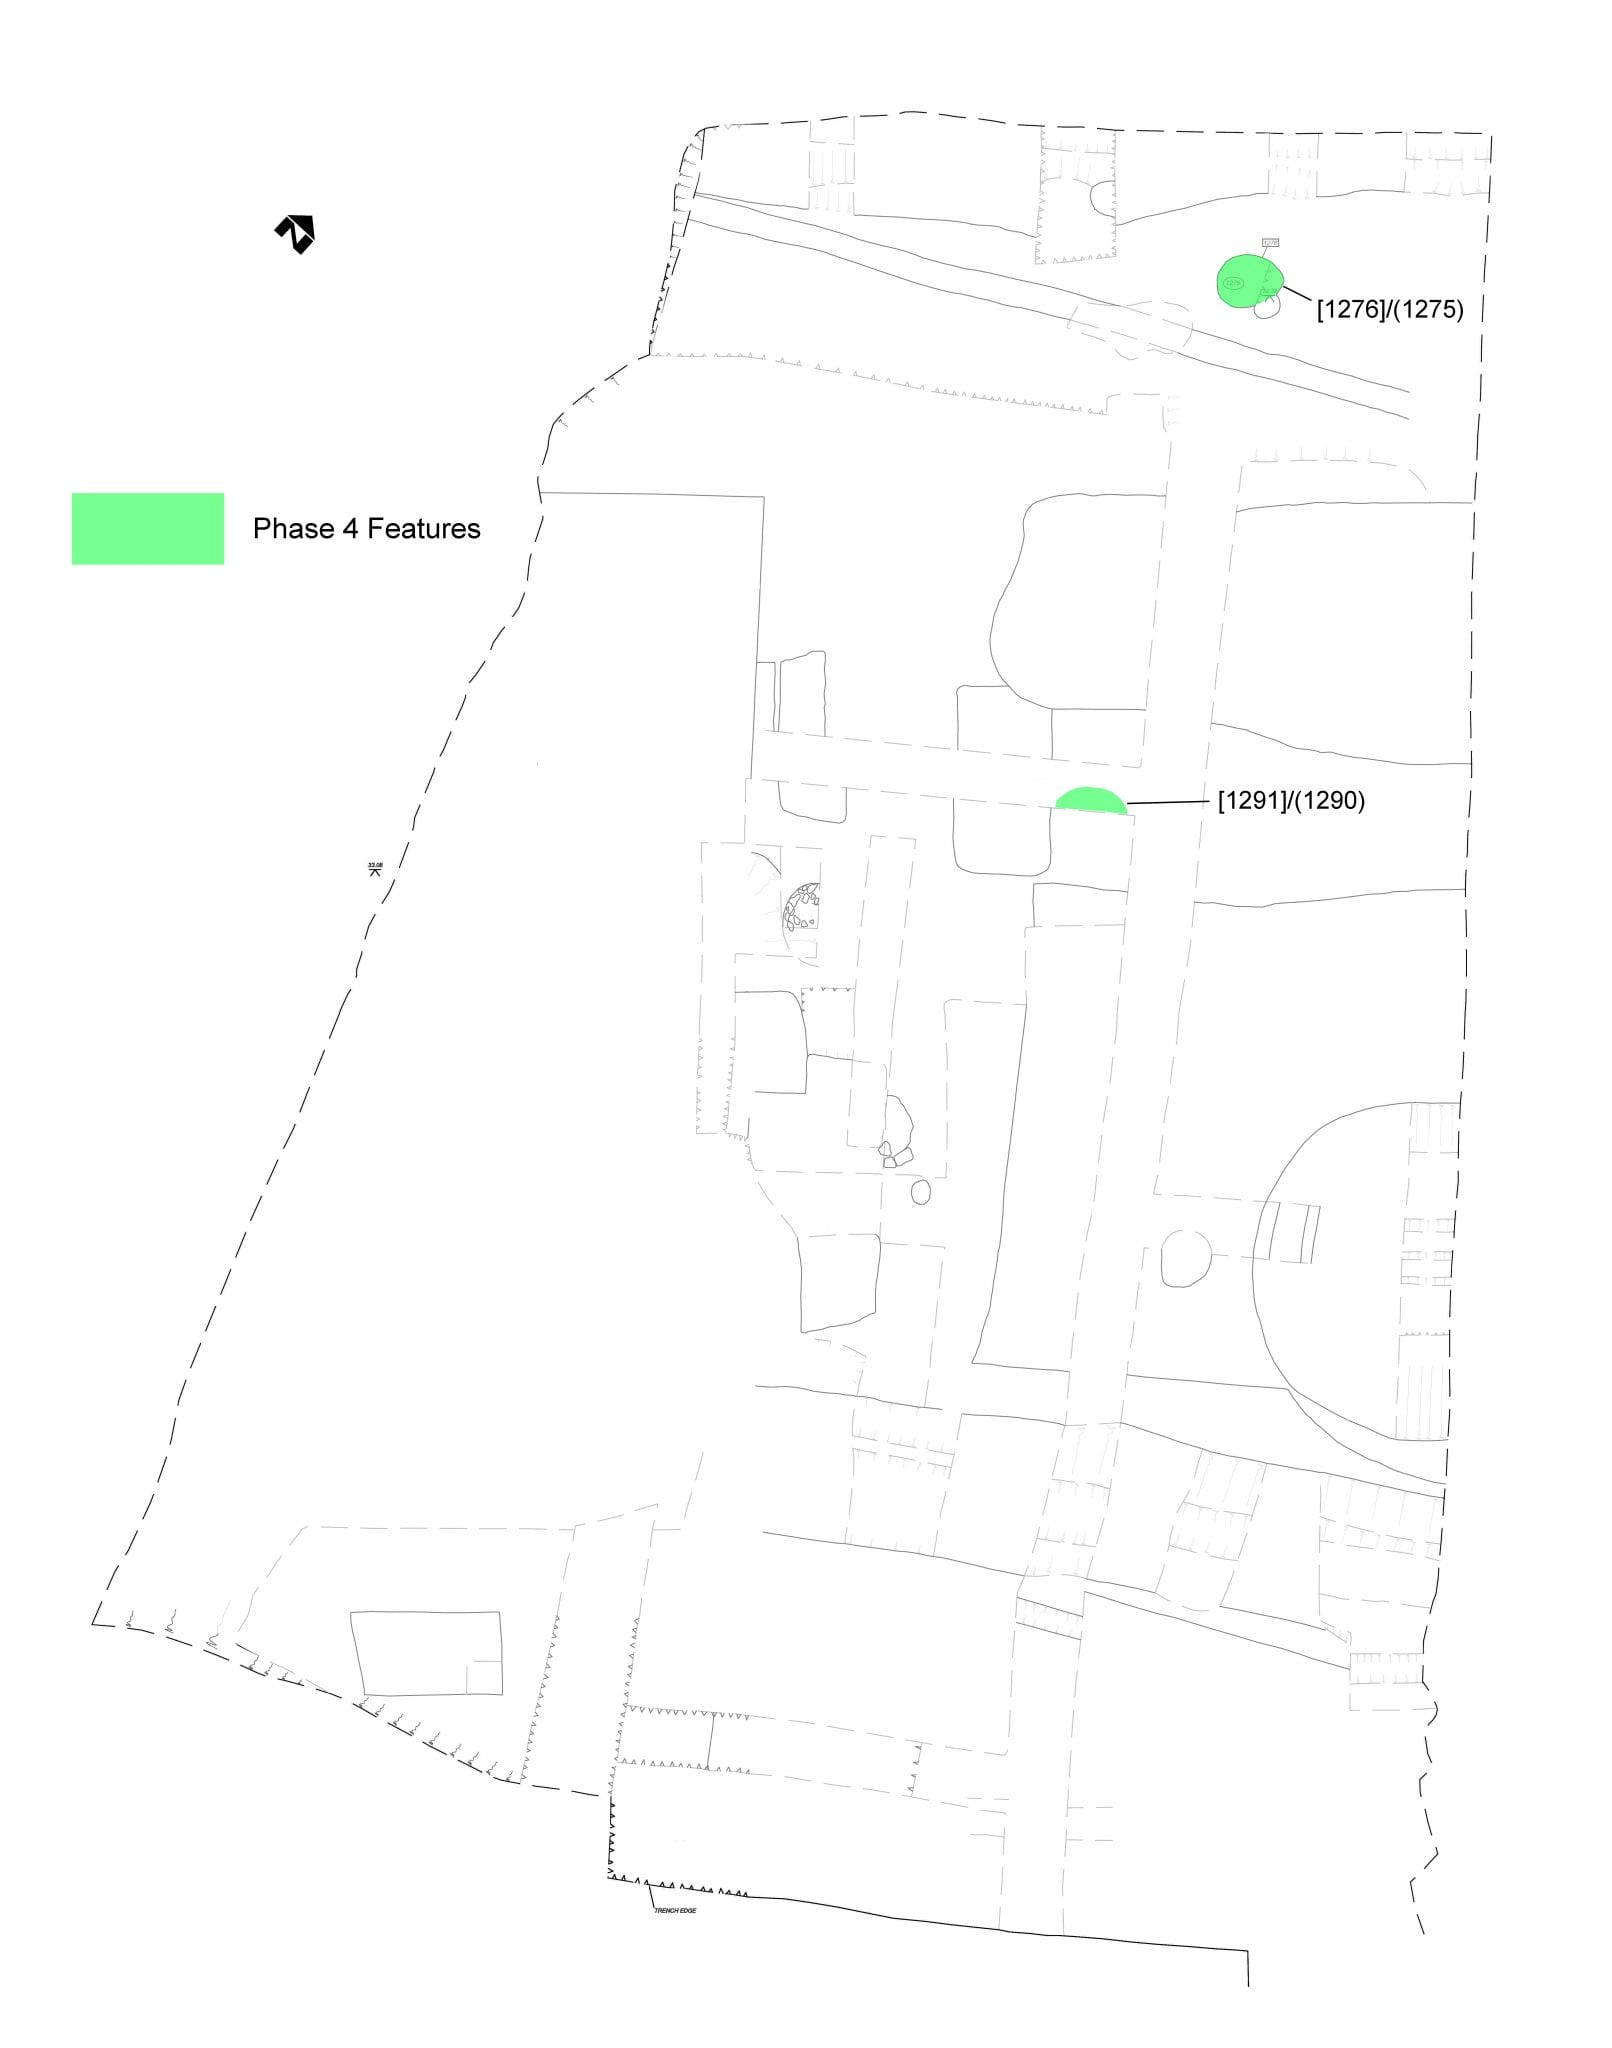 Phase 4 features, Trench 12